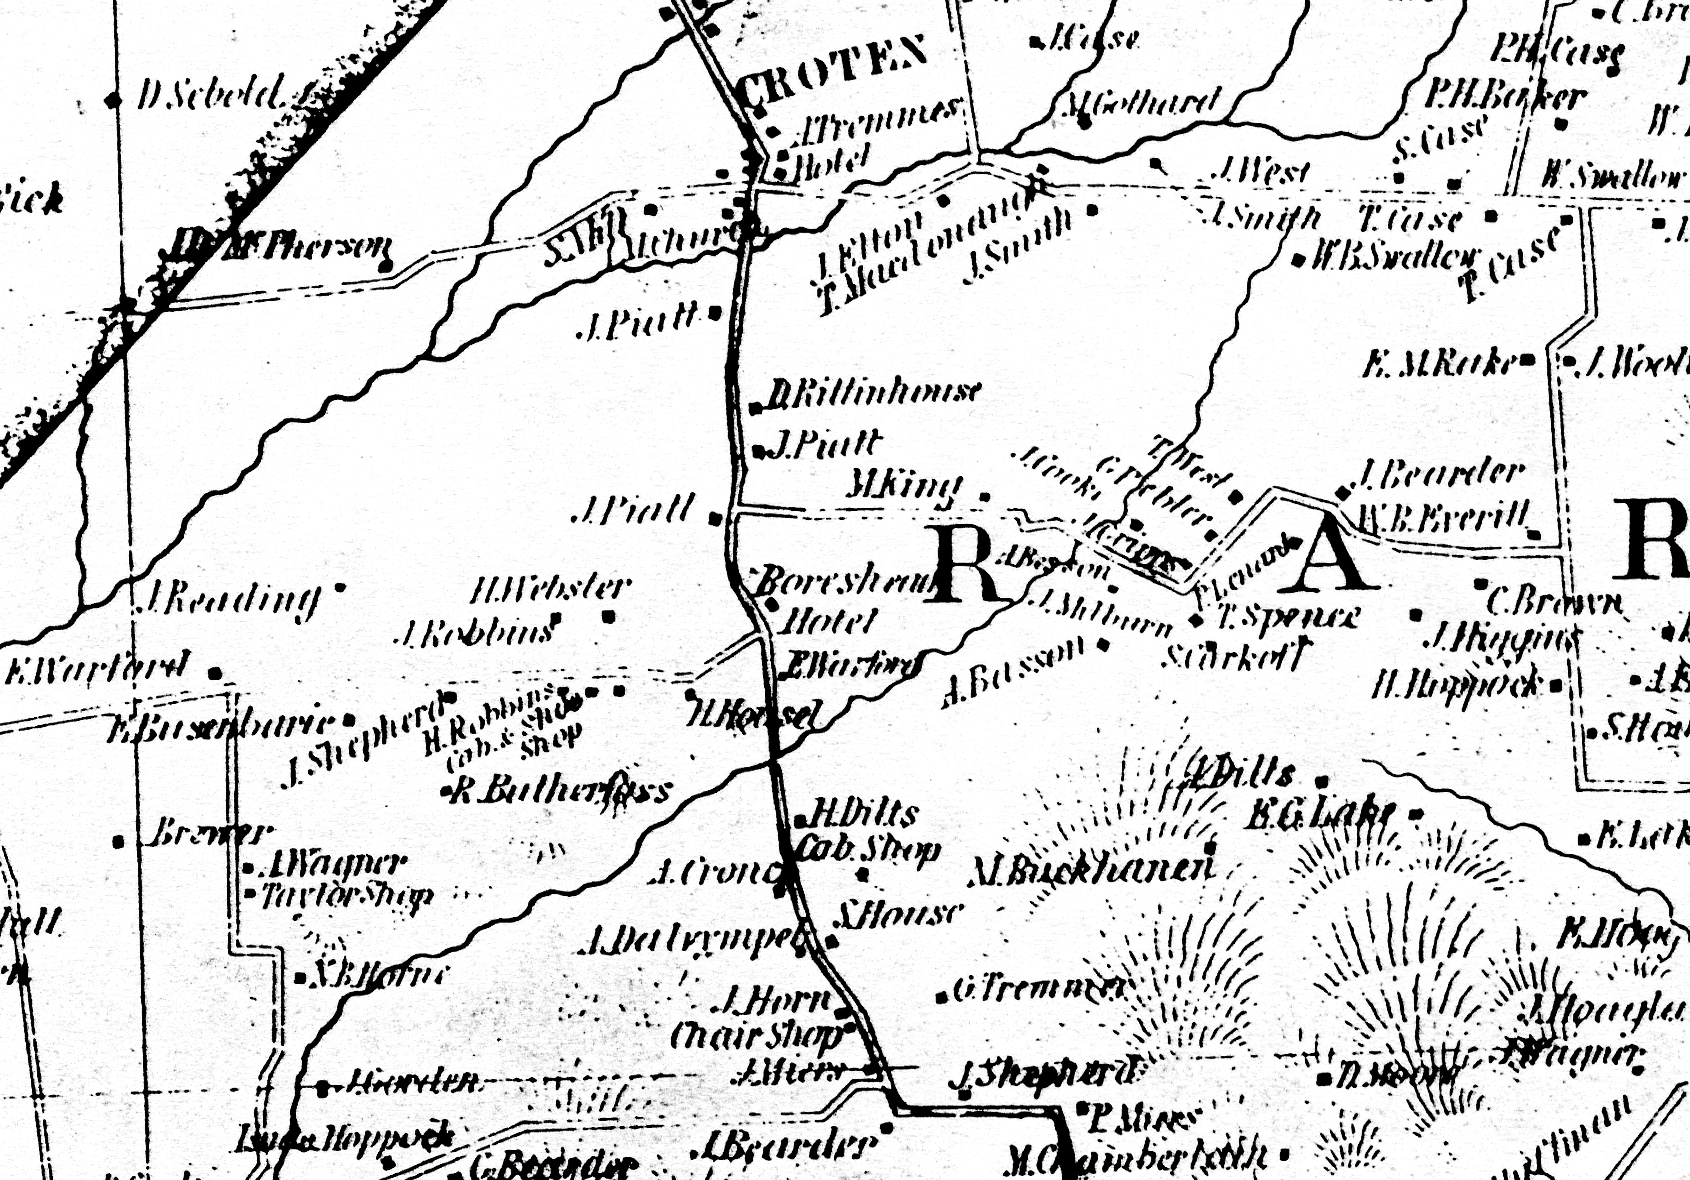 "Detail of the Cornell Map of 1851, showing the location of the Boarshead Tavern (""Hotel"") and Dr. James Pyatt."